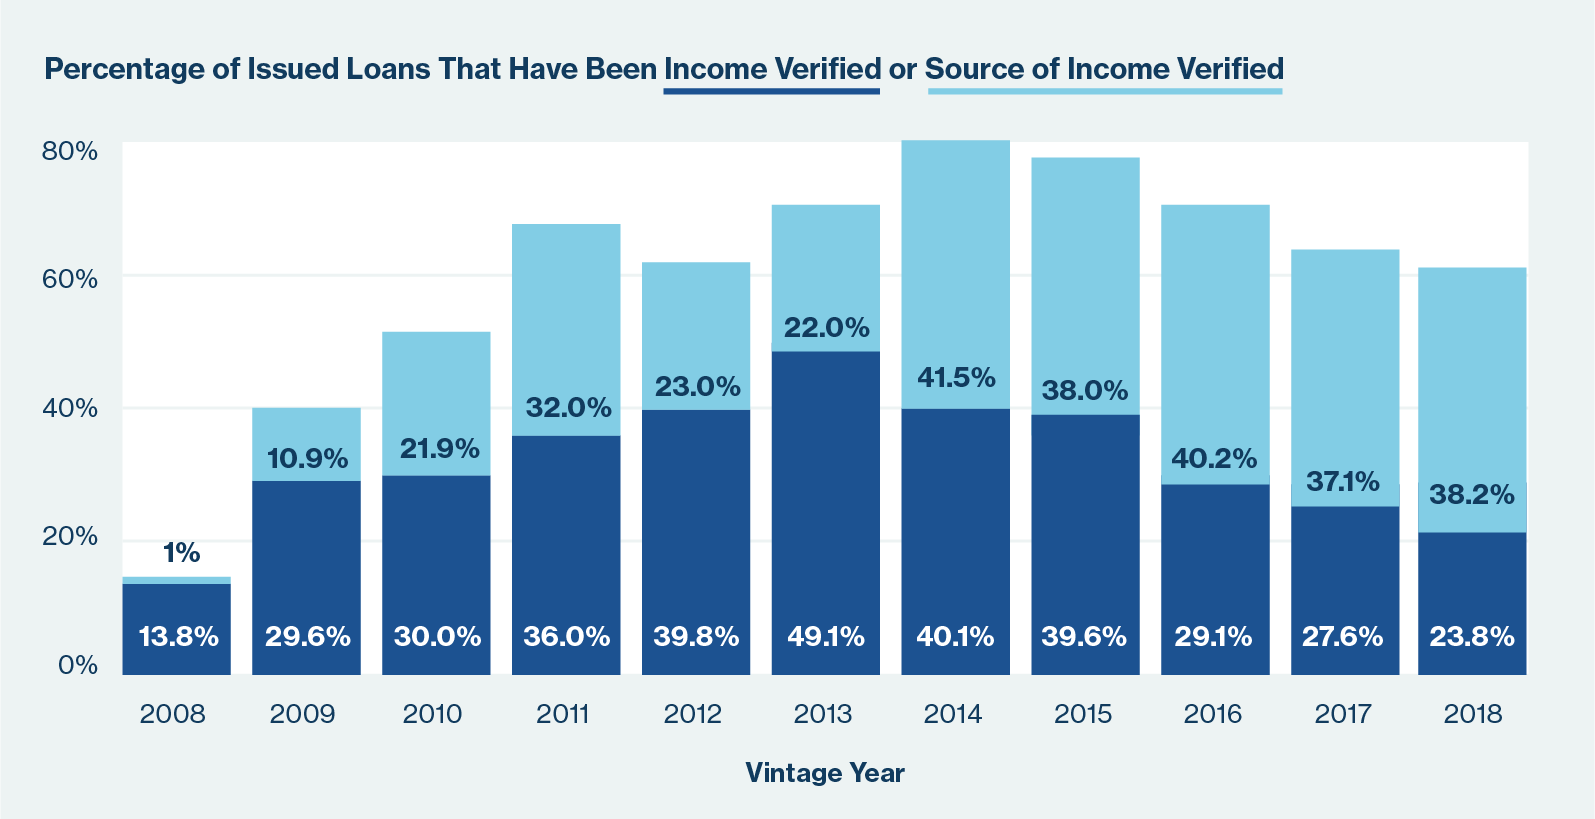 percentage of issued loans from 2008 through 2018 that have been income verified or source of income verified